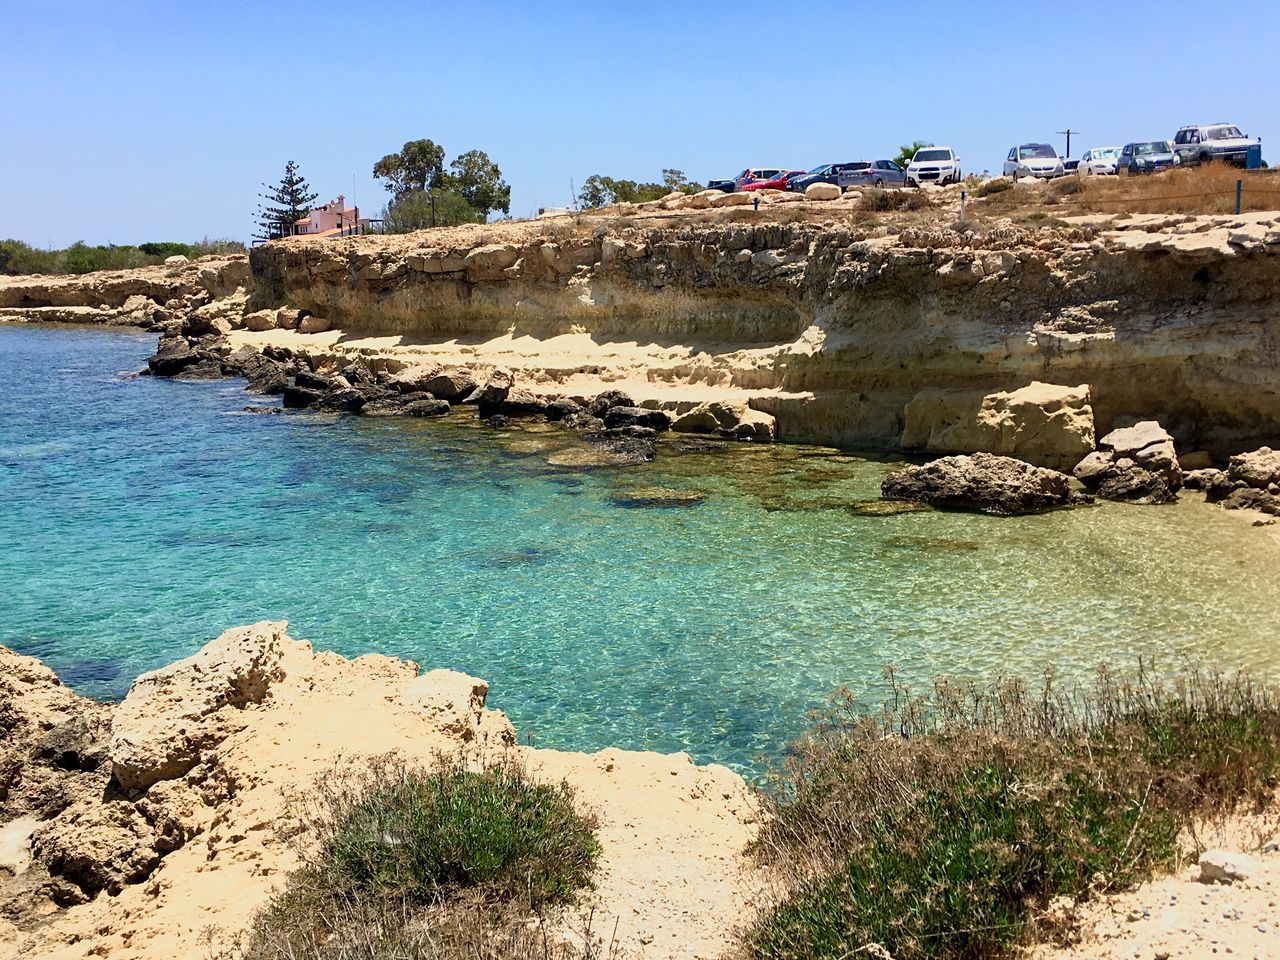 Cyprus Greenbay Sea Bay Sand Sandy Beach Clear Waters Crystal Protaras View Feel The Journey Original Experiences